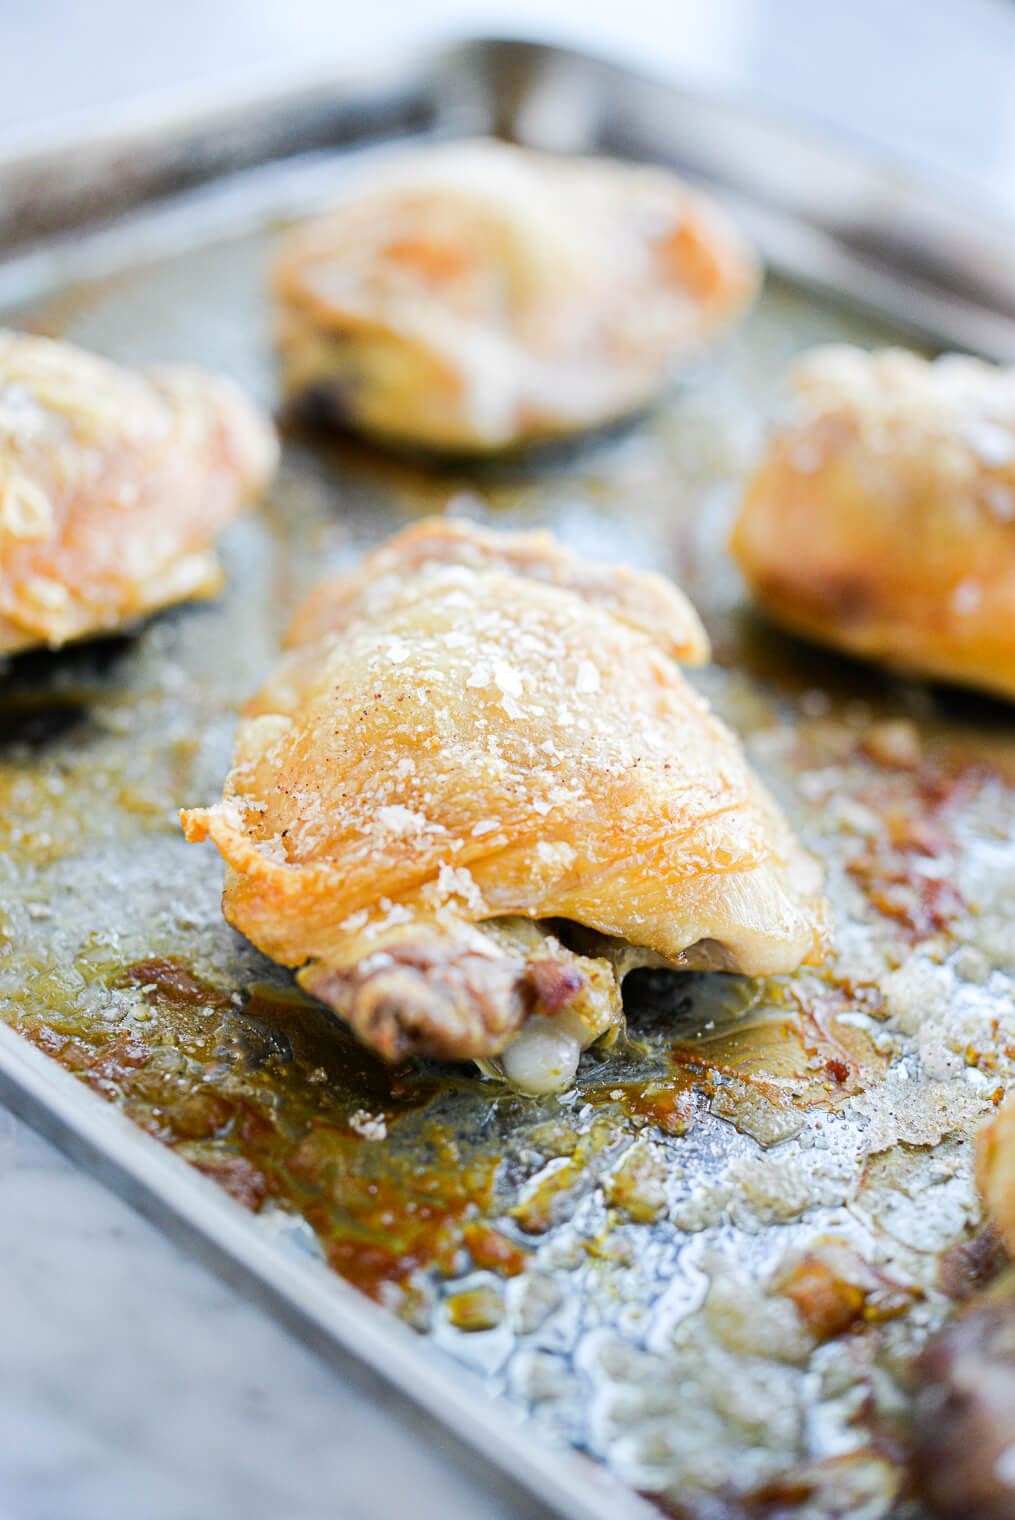 golden brown oven baked crispy chicken thighs on a stainless rimmed sheet pan sitting on a marble surface